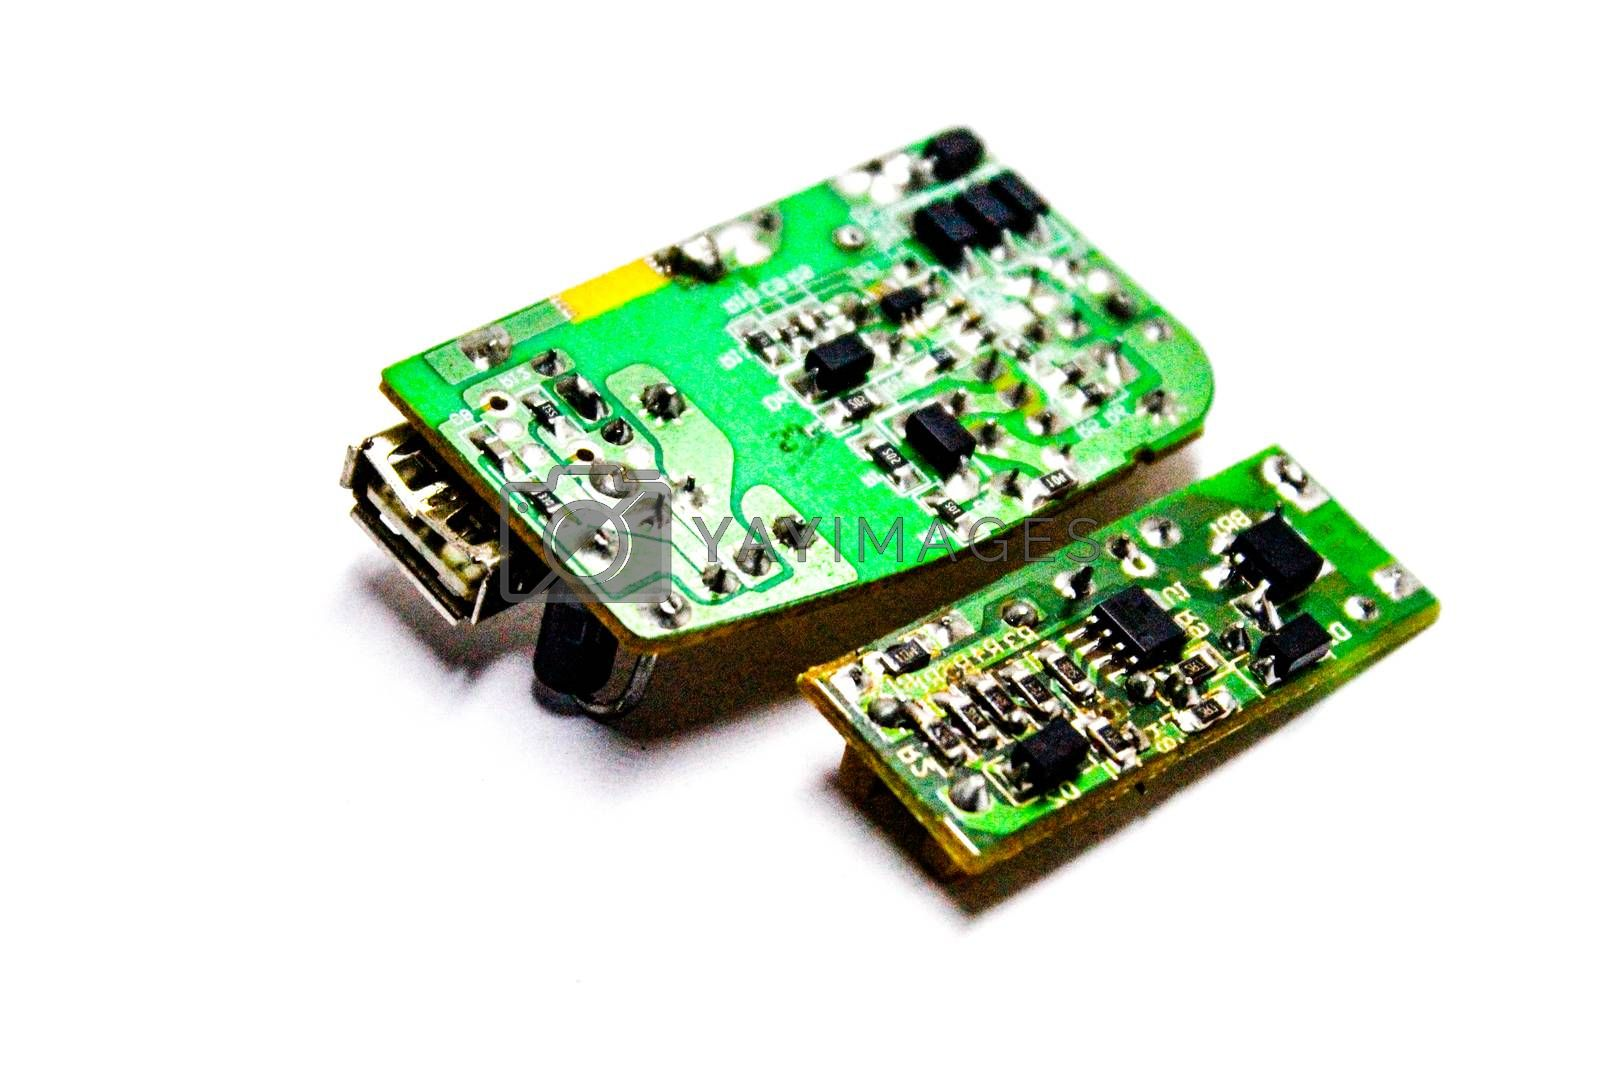 A picture of circuit board with white background